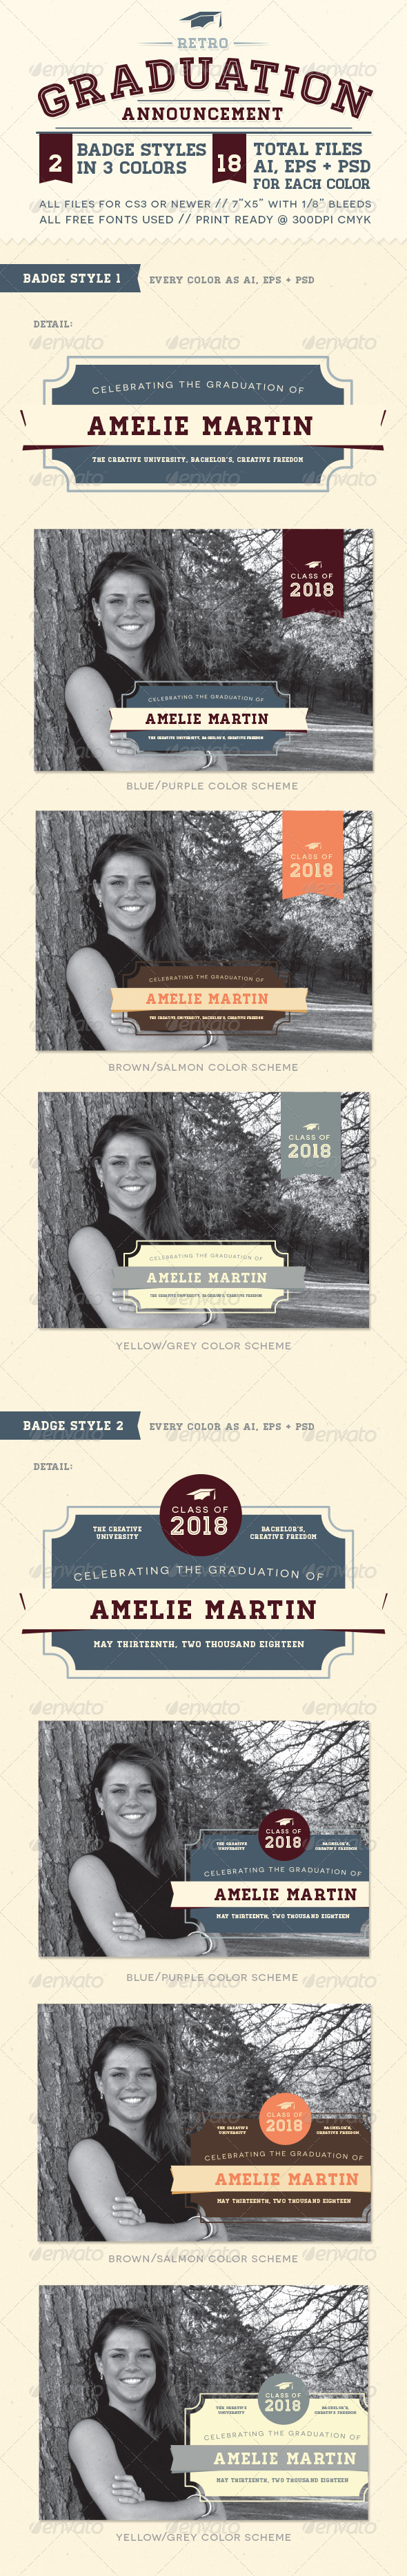 Retro Graduation Announcement - Invitations Cards & Invites